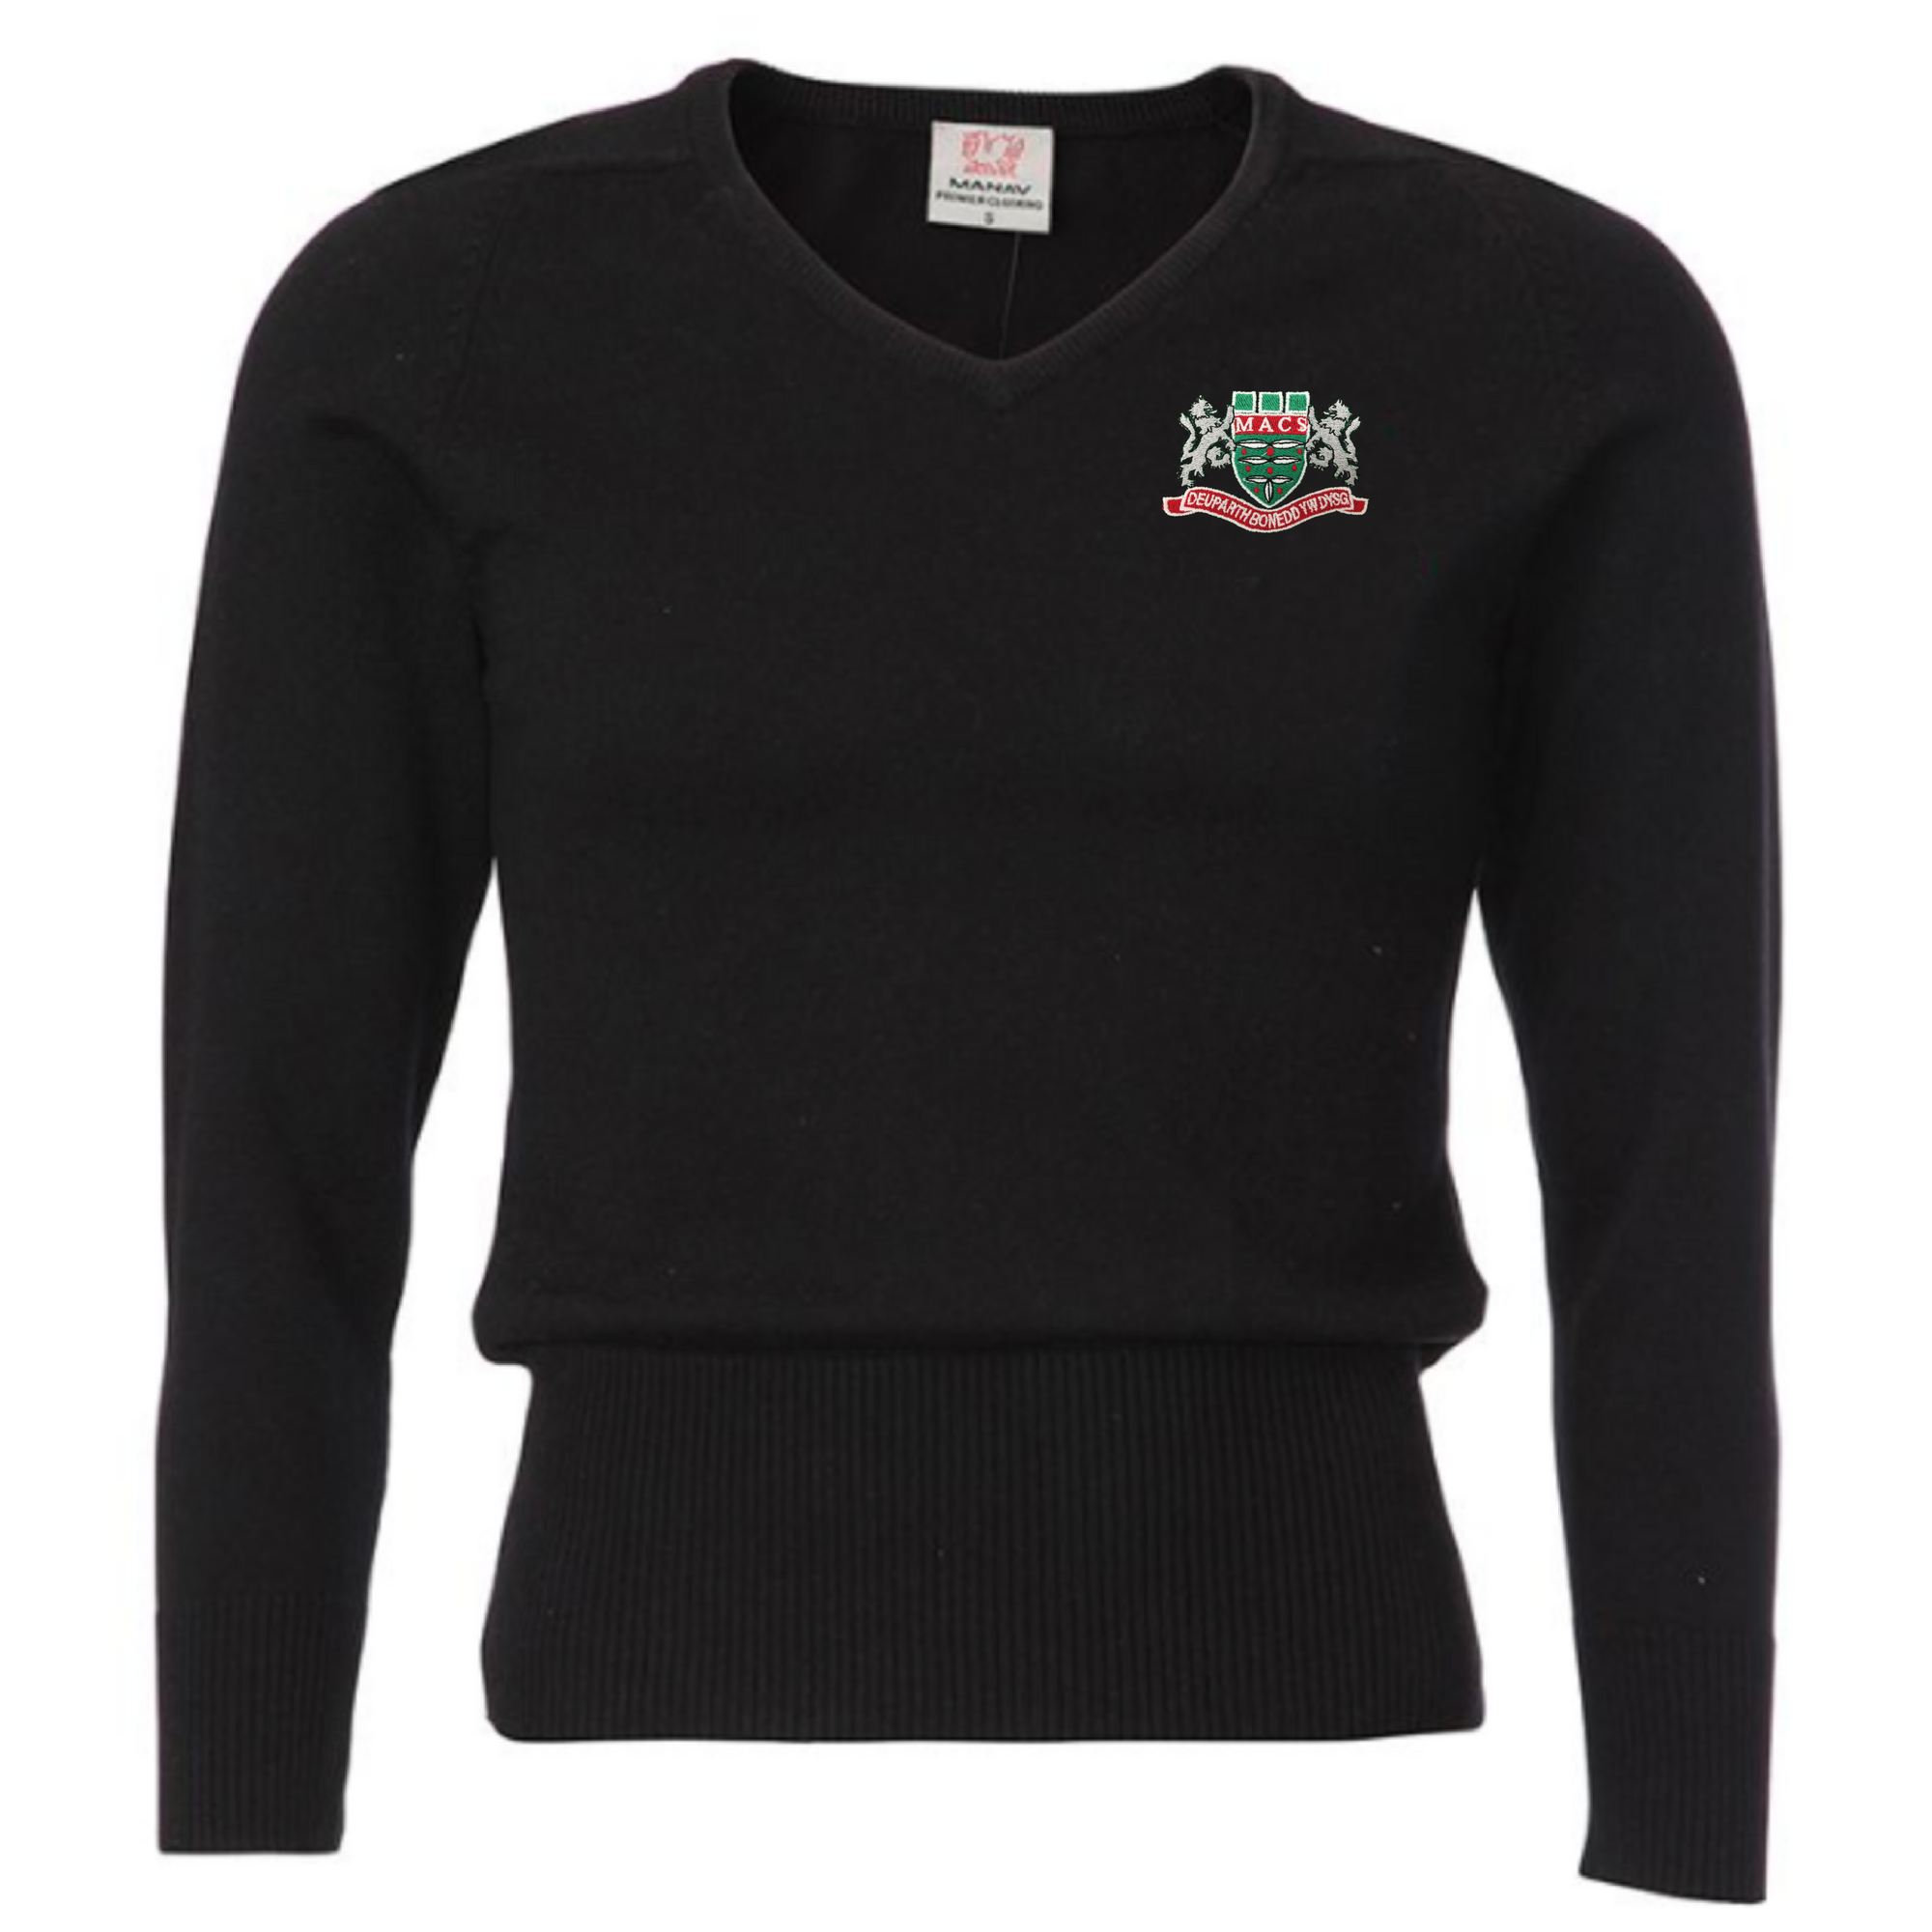 Mountain Ash Comprehensive School Girls V Neck Black Knit Jumper